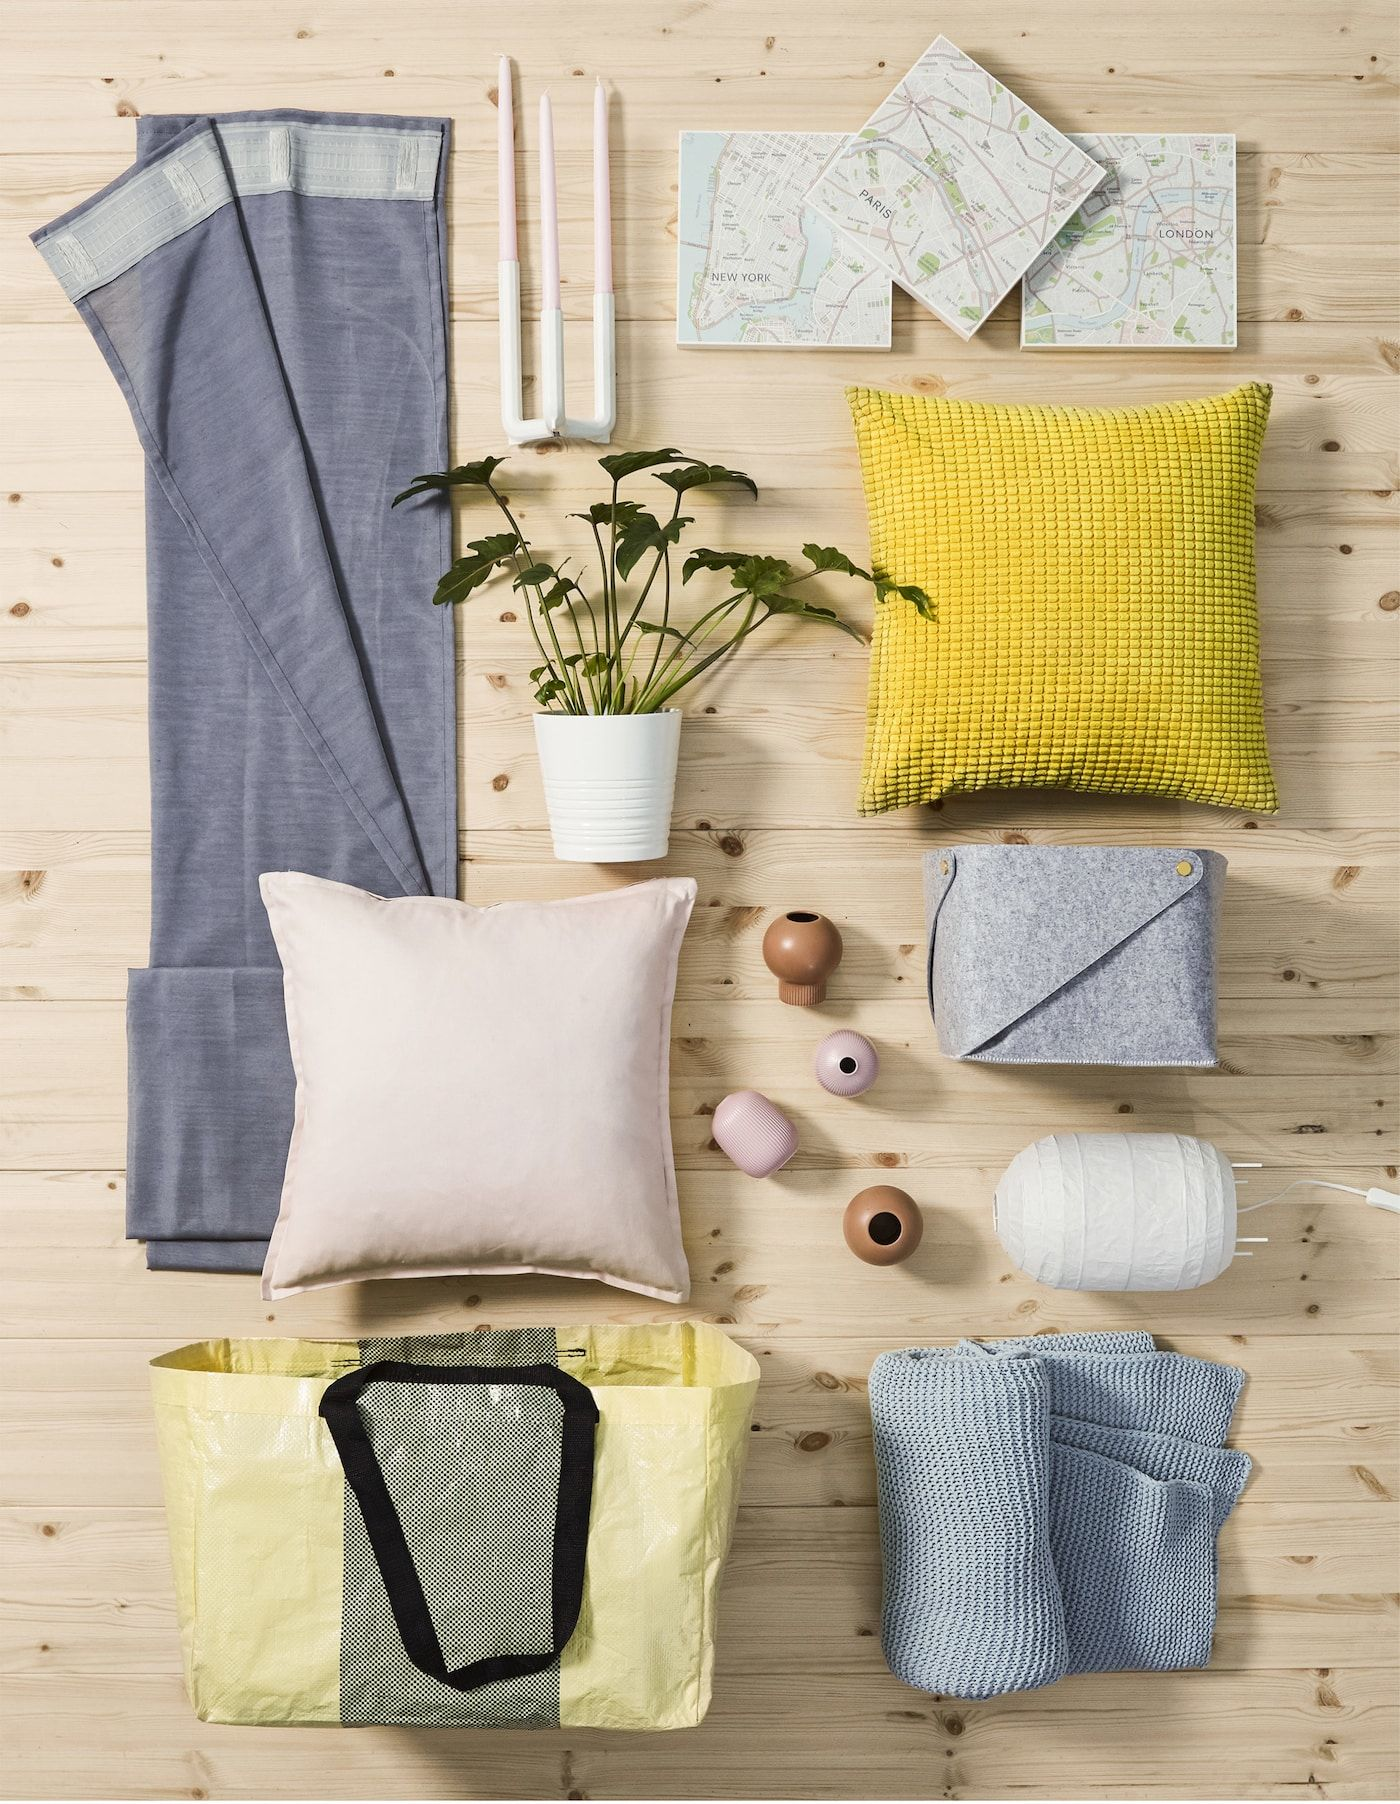 For Pastel Room Decor, Ikea Has Options Like Square Gullklocka